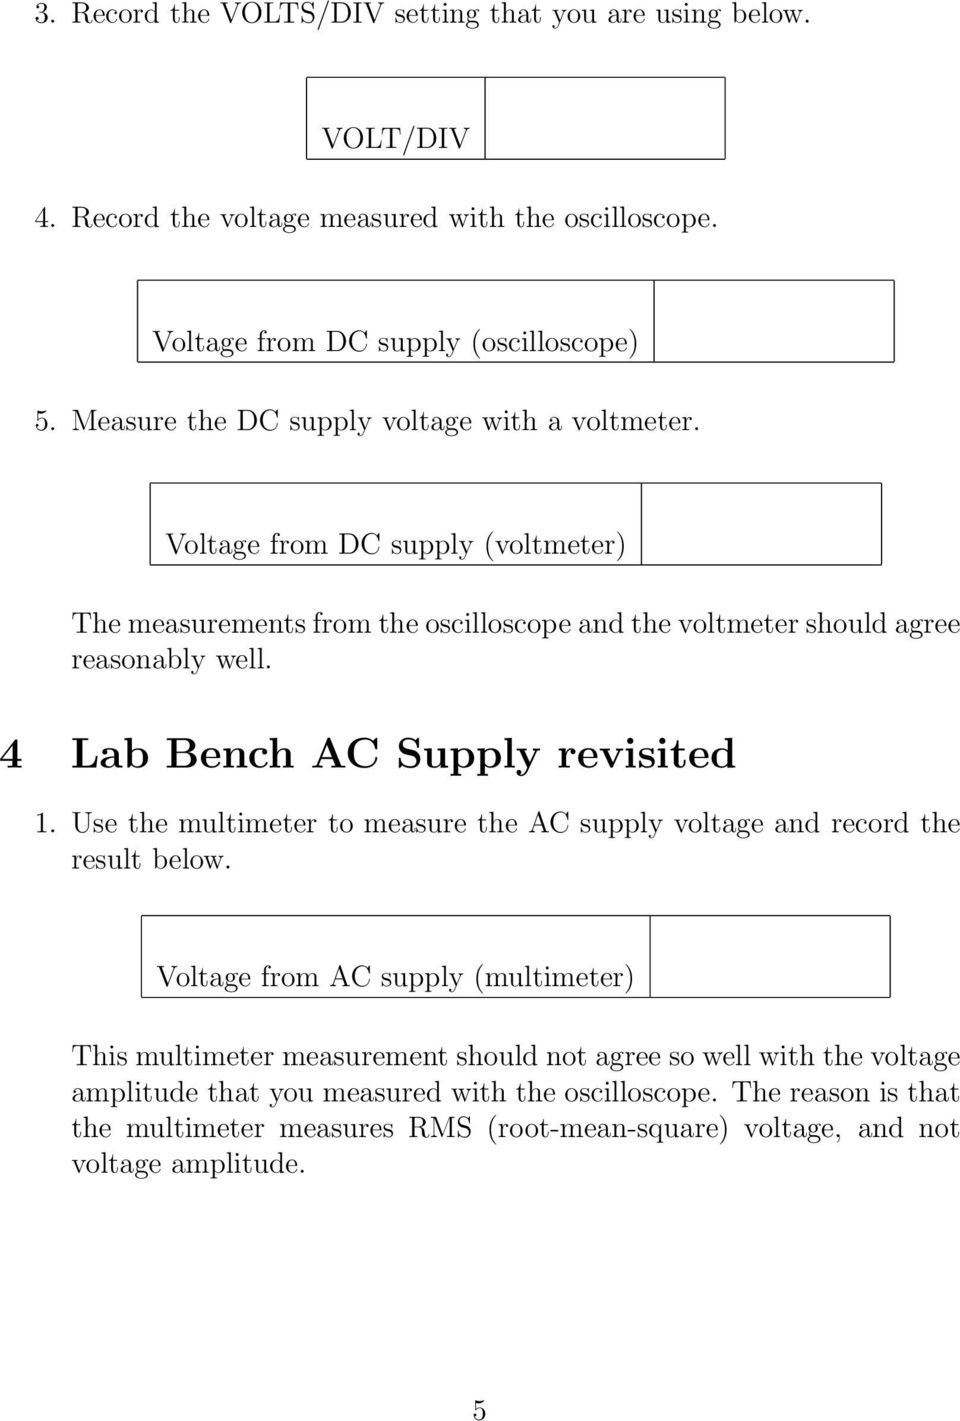 4 Lab Bench AC Supply revisited 1. Use the multimeter to measure the AC supply voltage and record the result below.